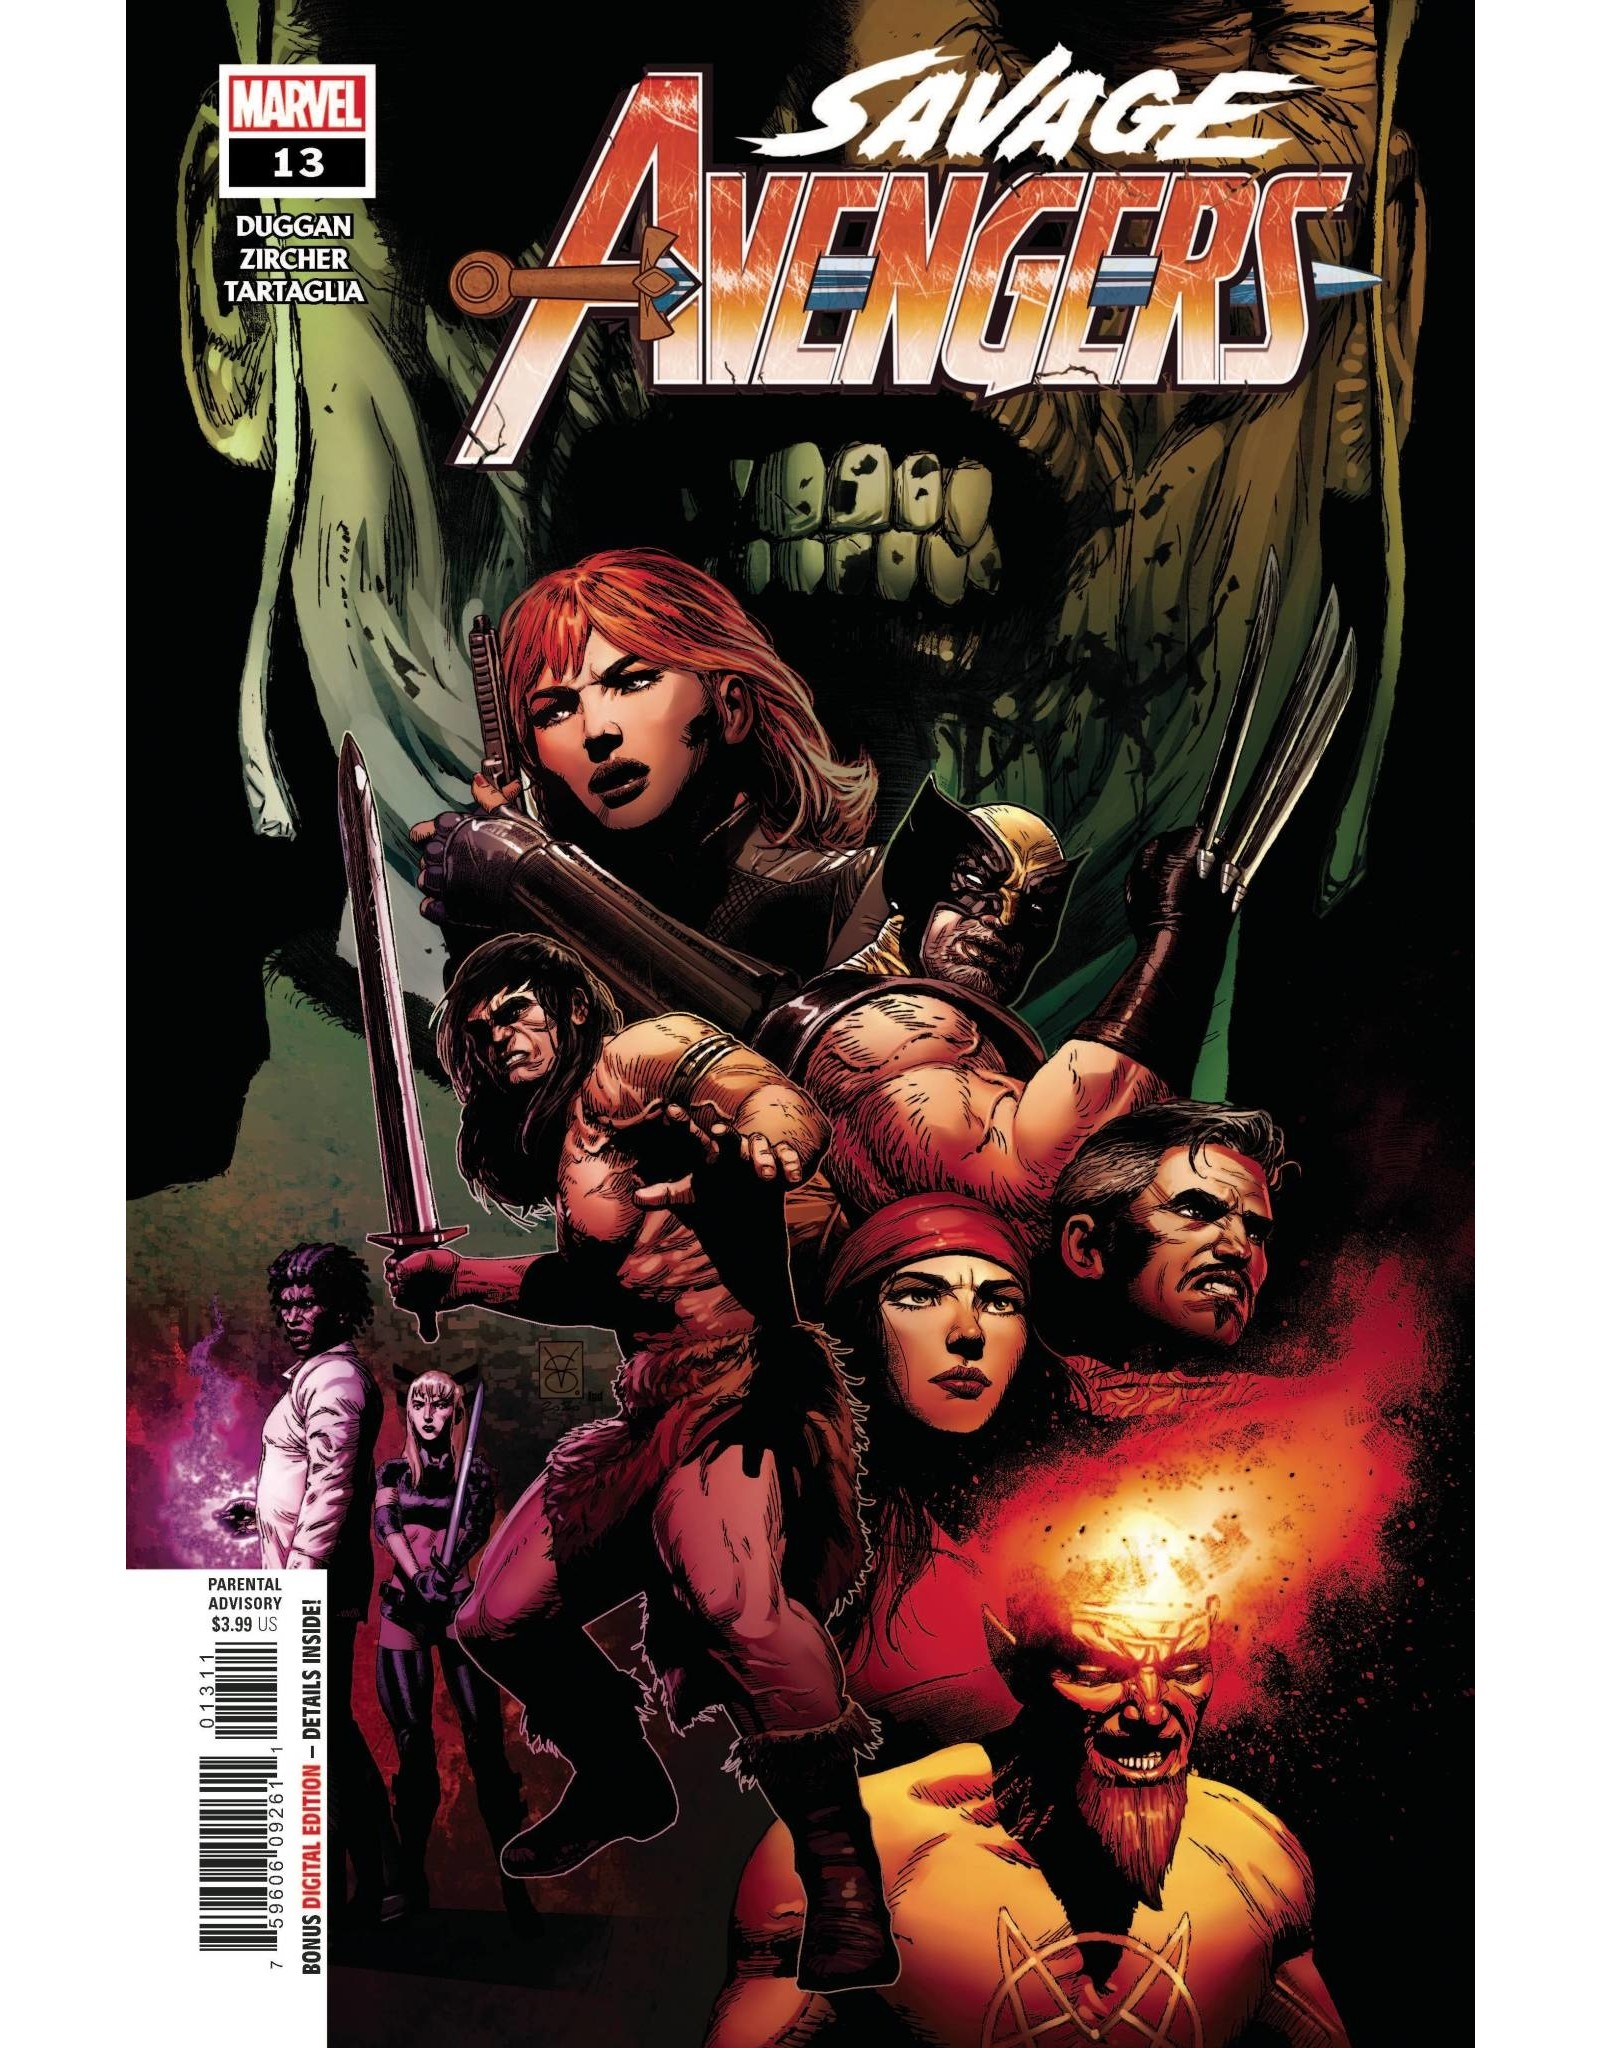 Marvel Comics SAVAGE AVENGERS #13